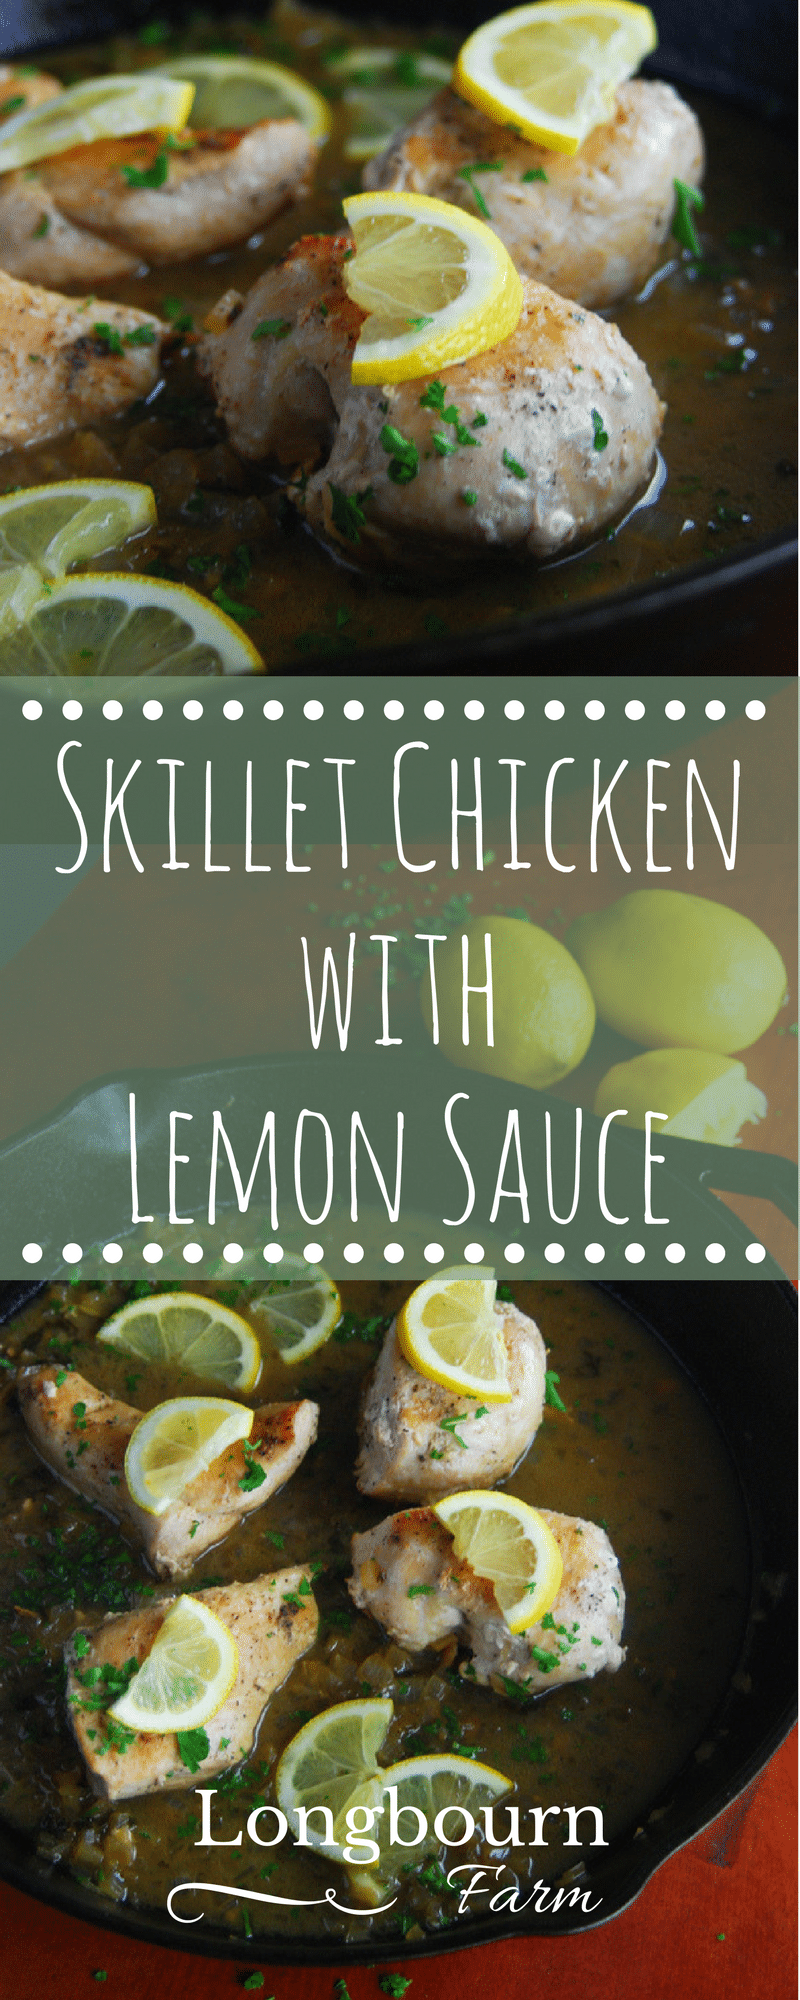 Skillet chicken with lemon sauce is an elegant dinner that only takes 30 minutes to put together. Make this on a weeknight or special occasion!! Try it!